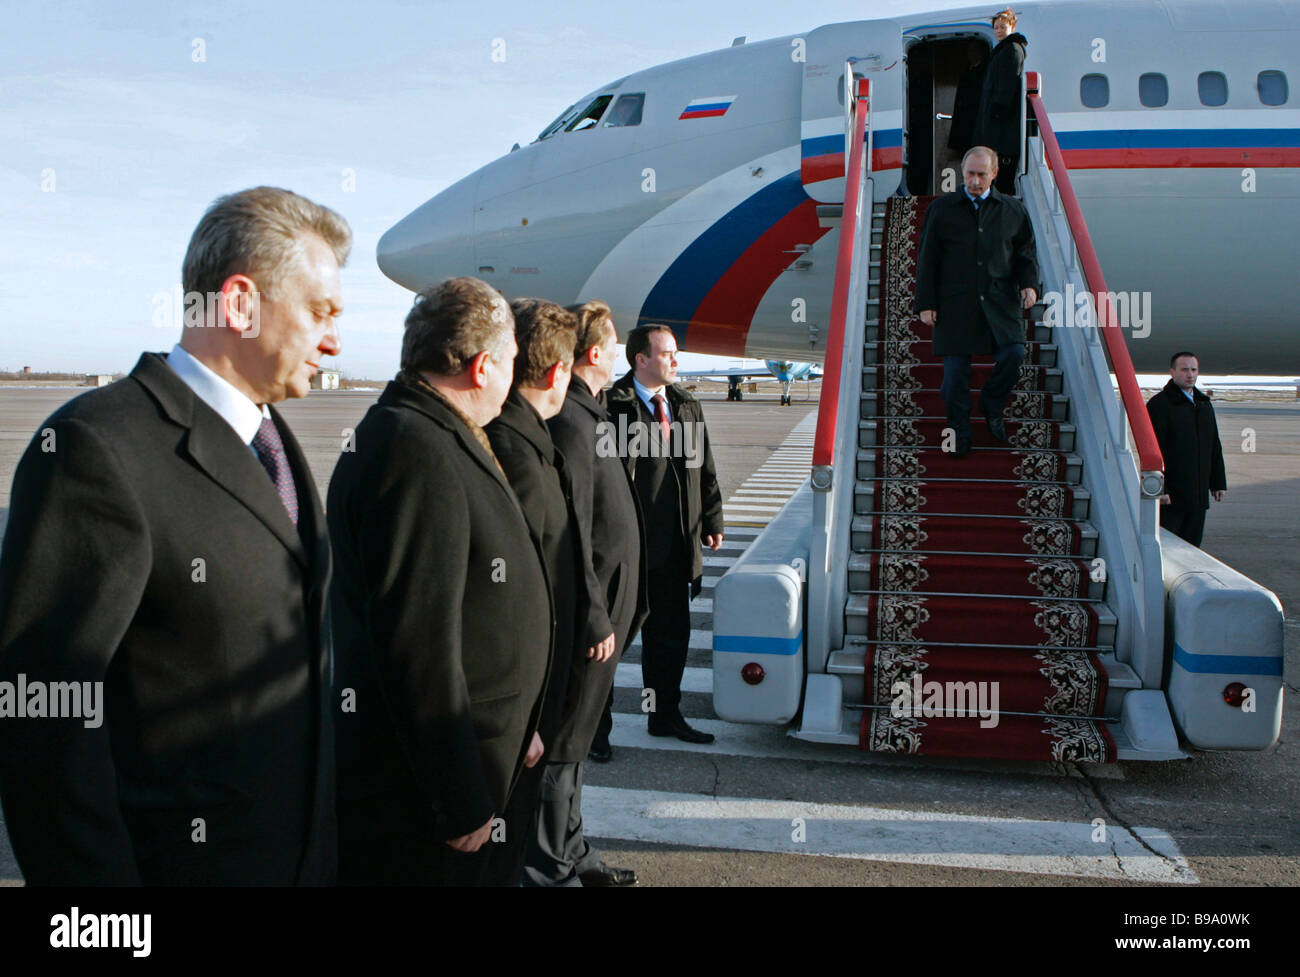 Russian President Vladimir Putin on the stairway upon arrival in the Volgograd airport - Stock Image